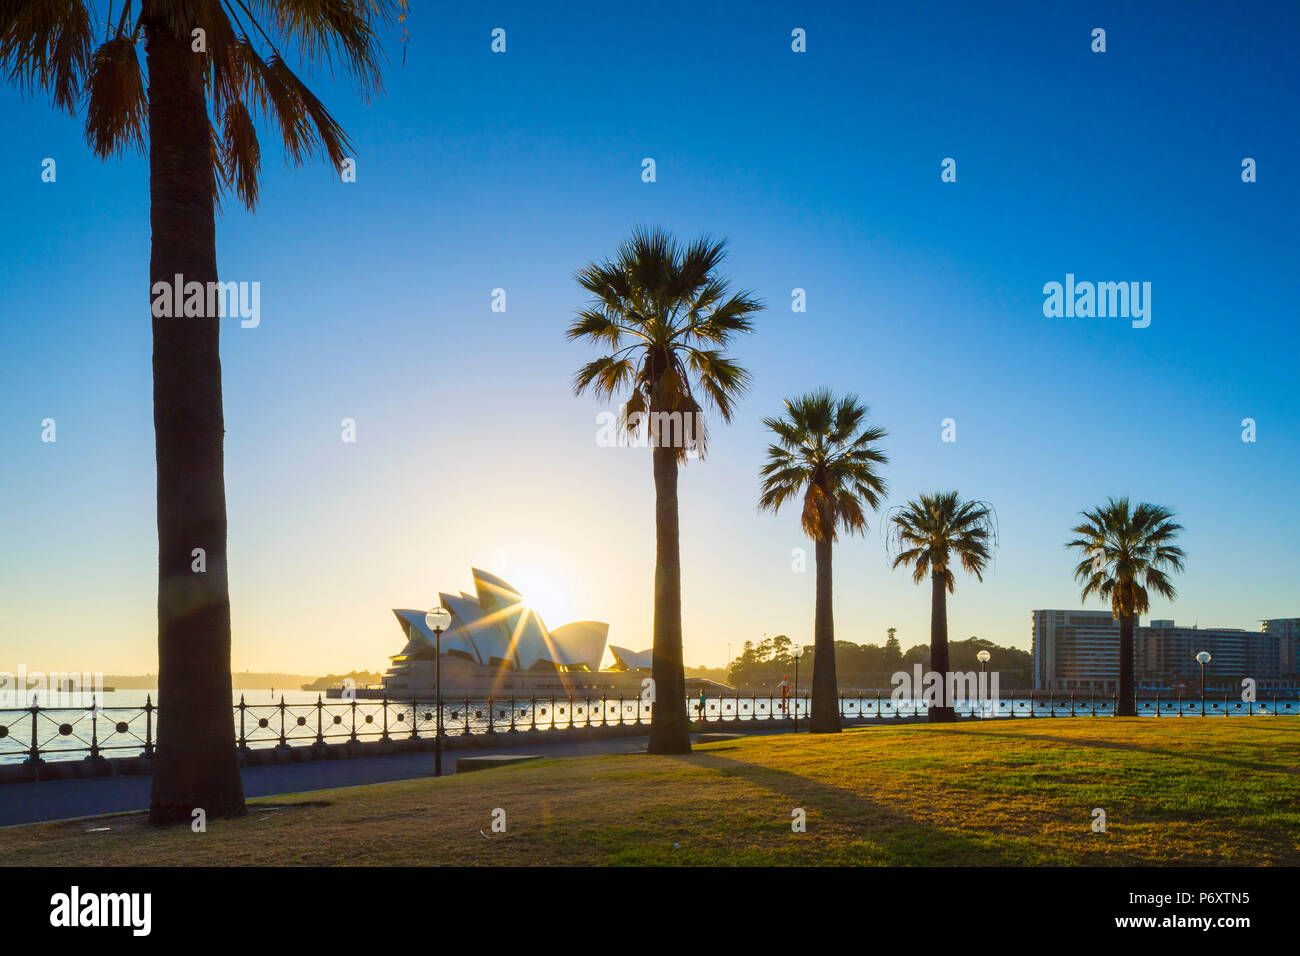 Sydney Opera House at sunrise, Sydney, New South Wales, Australia - Stock Image